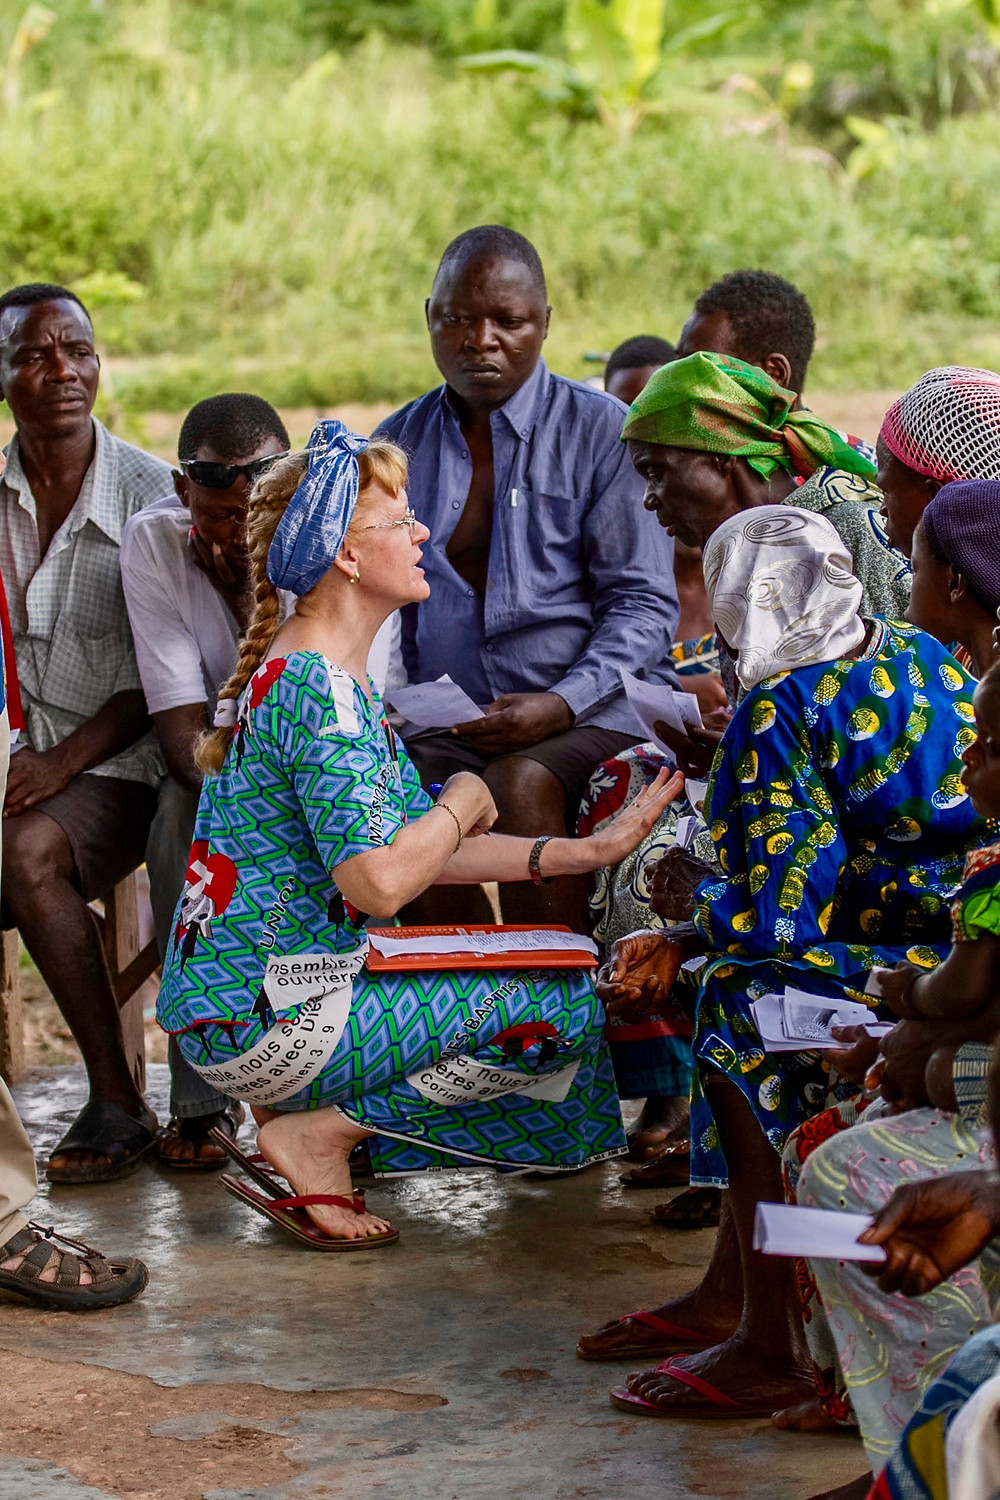 IMB missionary Barbara Singerman speaks with an Ayizo woman while writing down symptoms during a medical clinic in Benin. The clinic's purpose was to meet medical needs and open opportunities for evangelization and church planting. (IMB Photo)